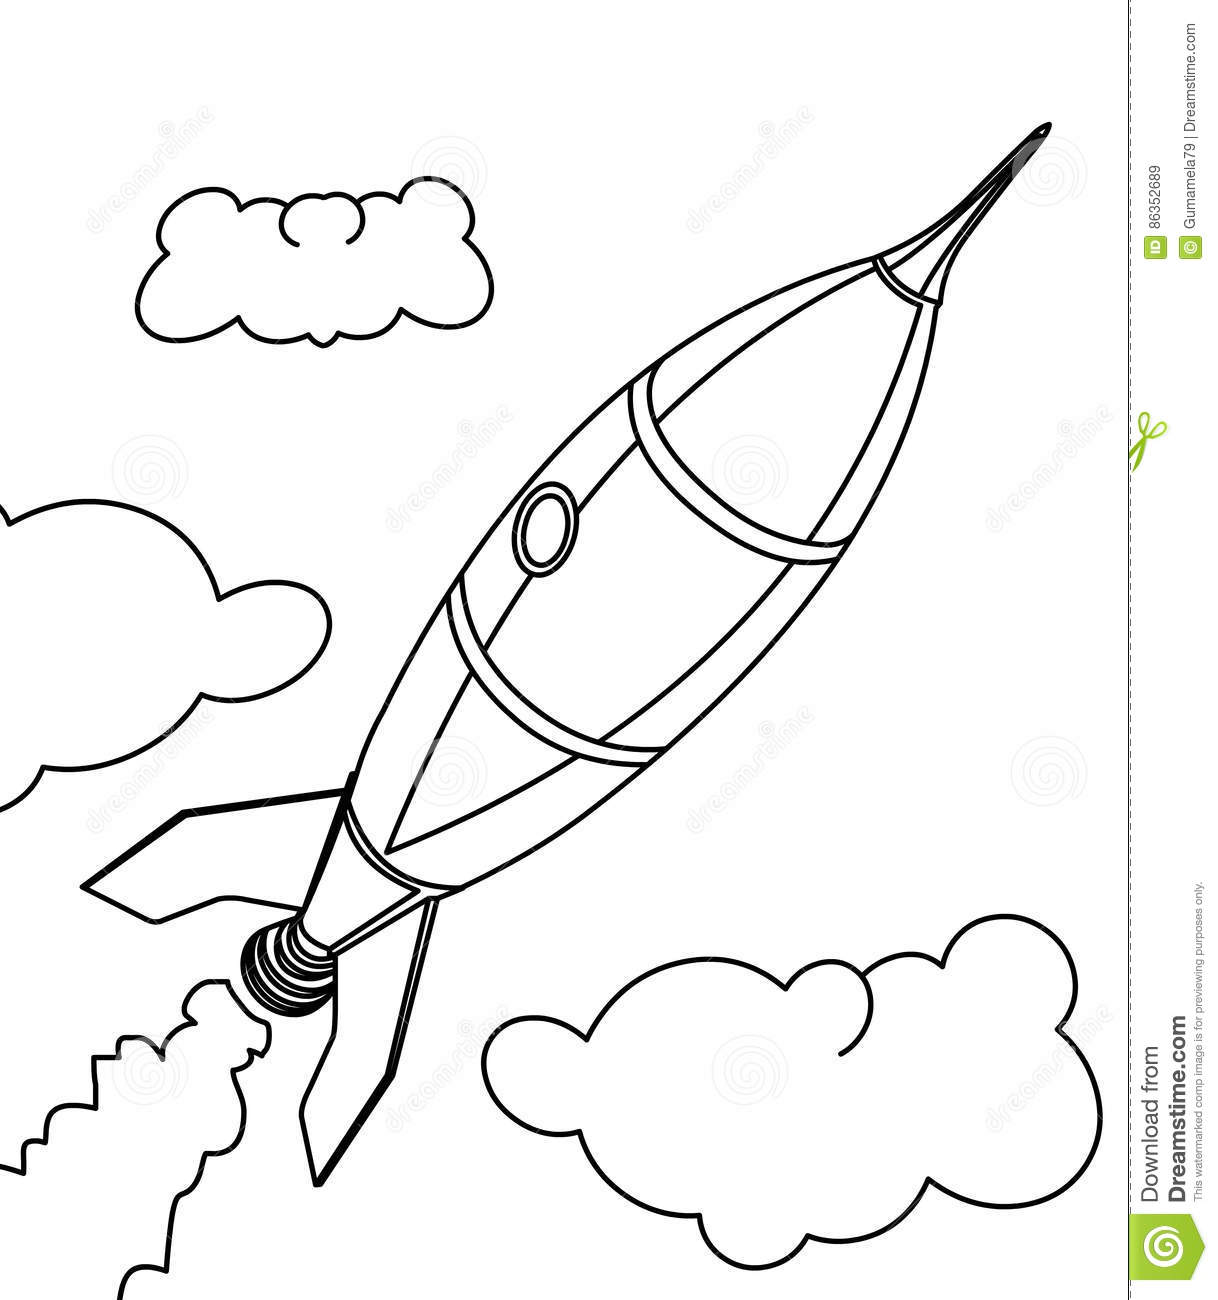 Rocket ship coloring page stock illustration. Illustration of ...